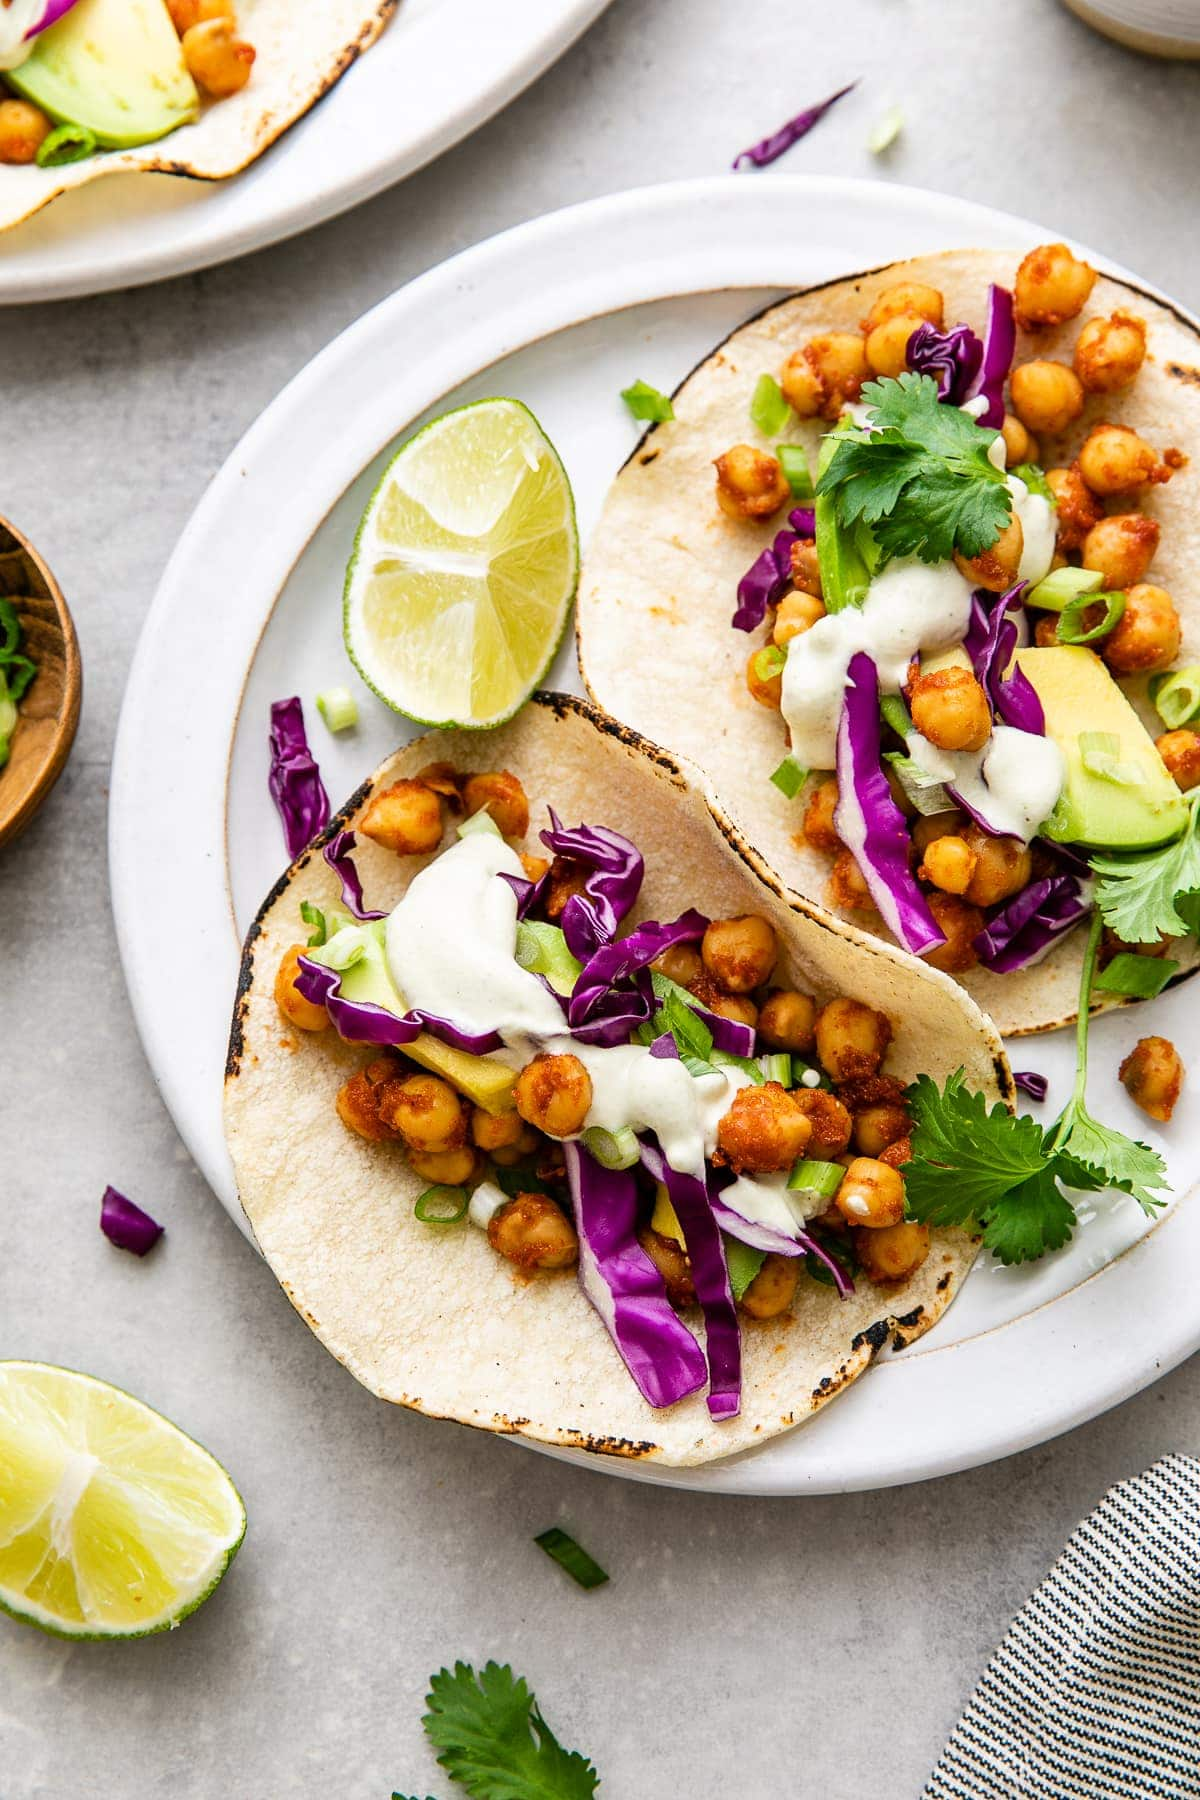 top down view of plate with chickpea tacos and items surrounding.